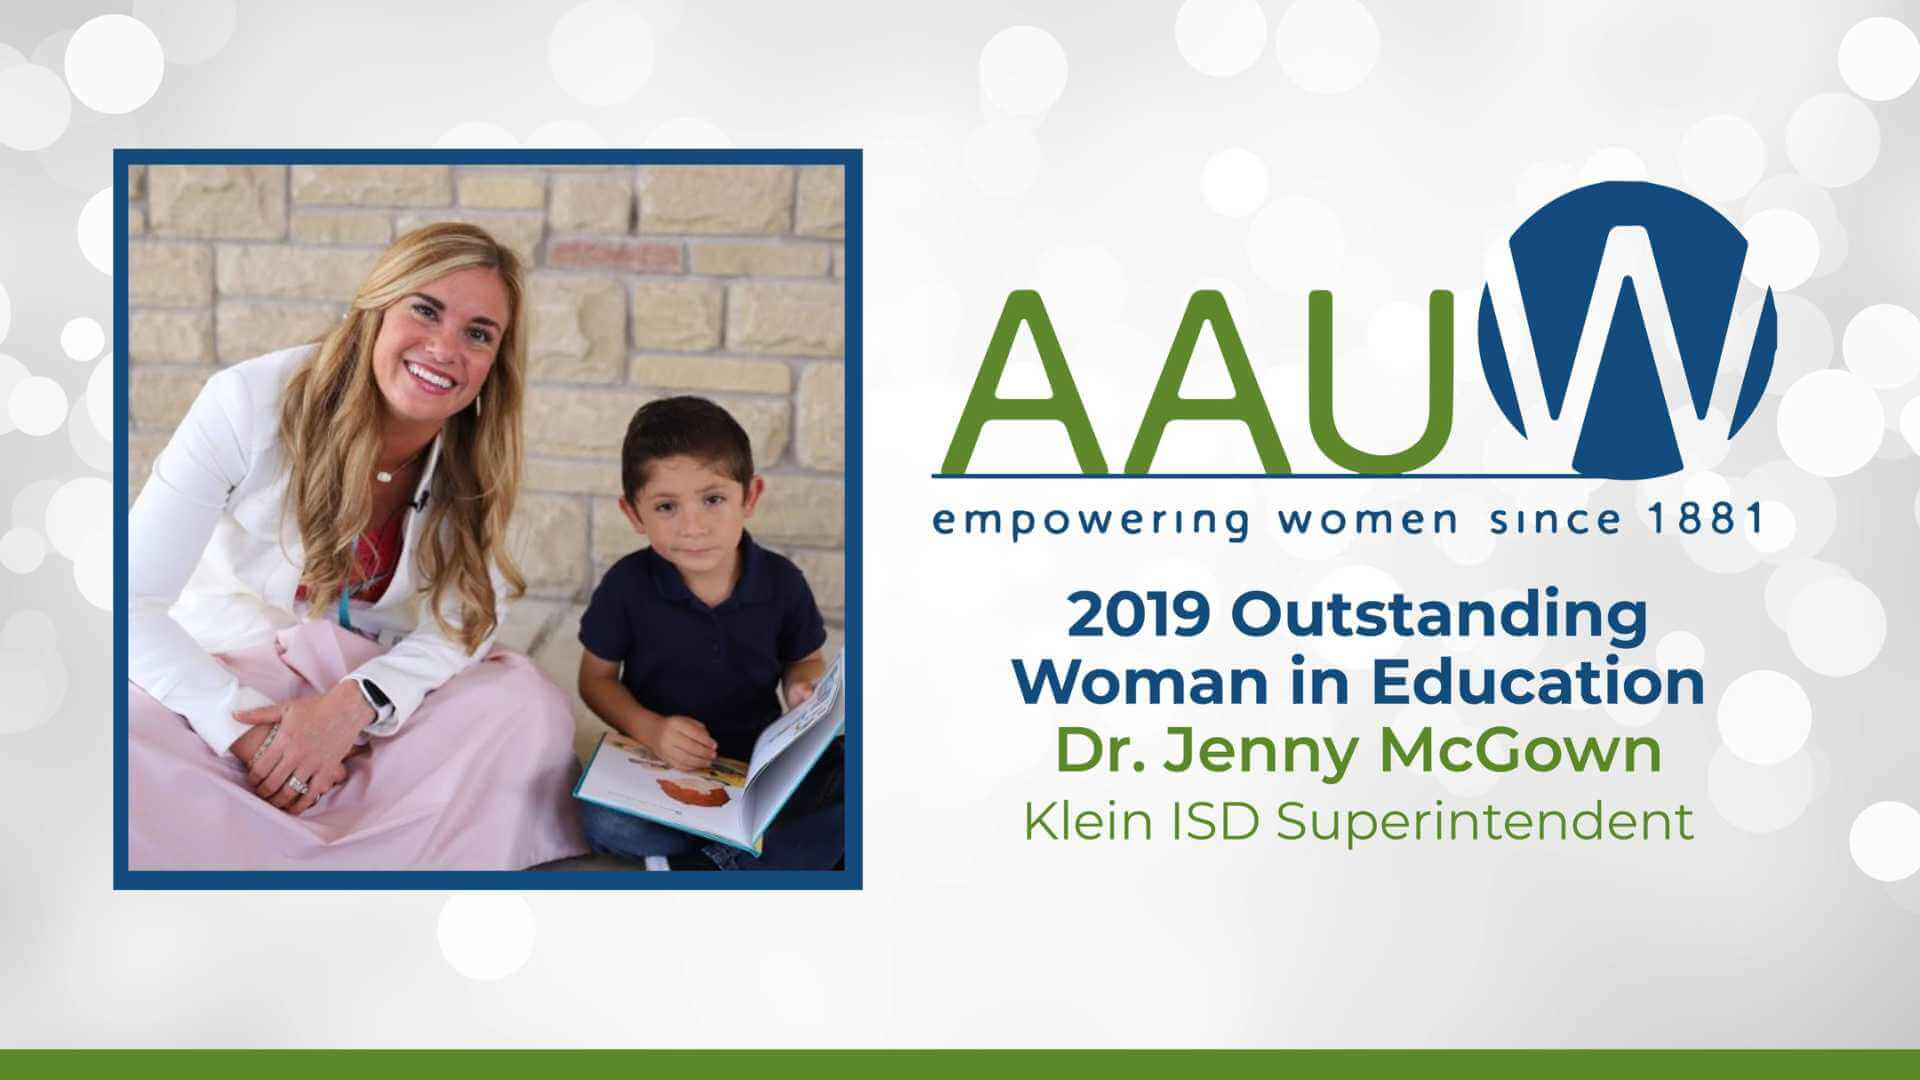 Klein ISD Superintendent Named AAUW Outstanding Woman in Education